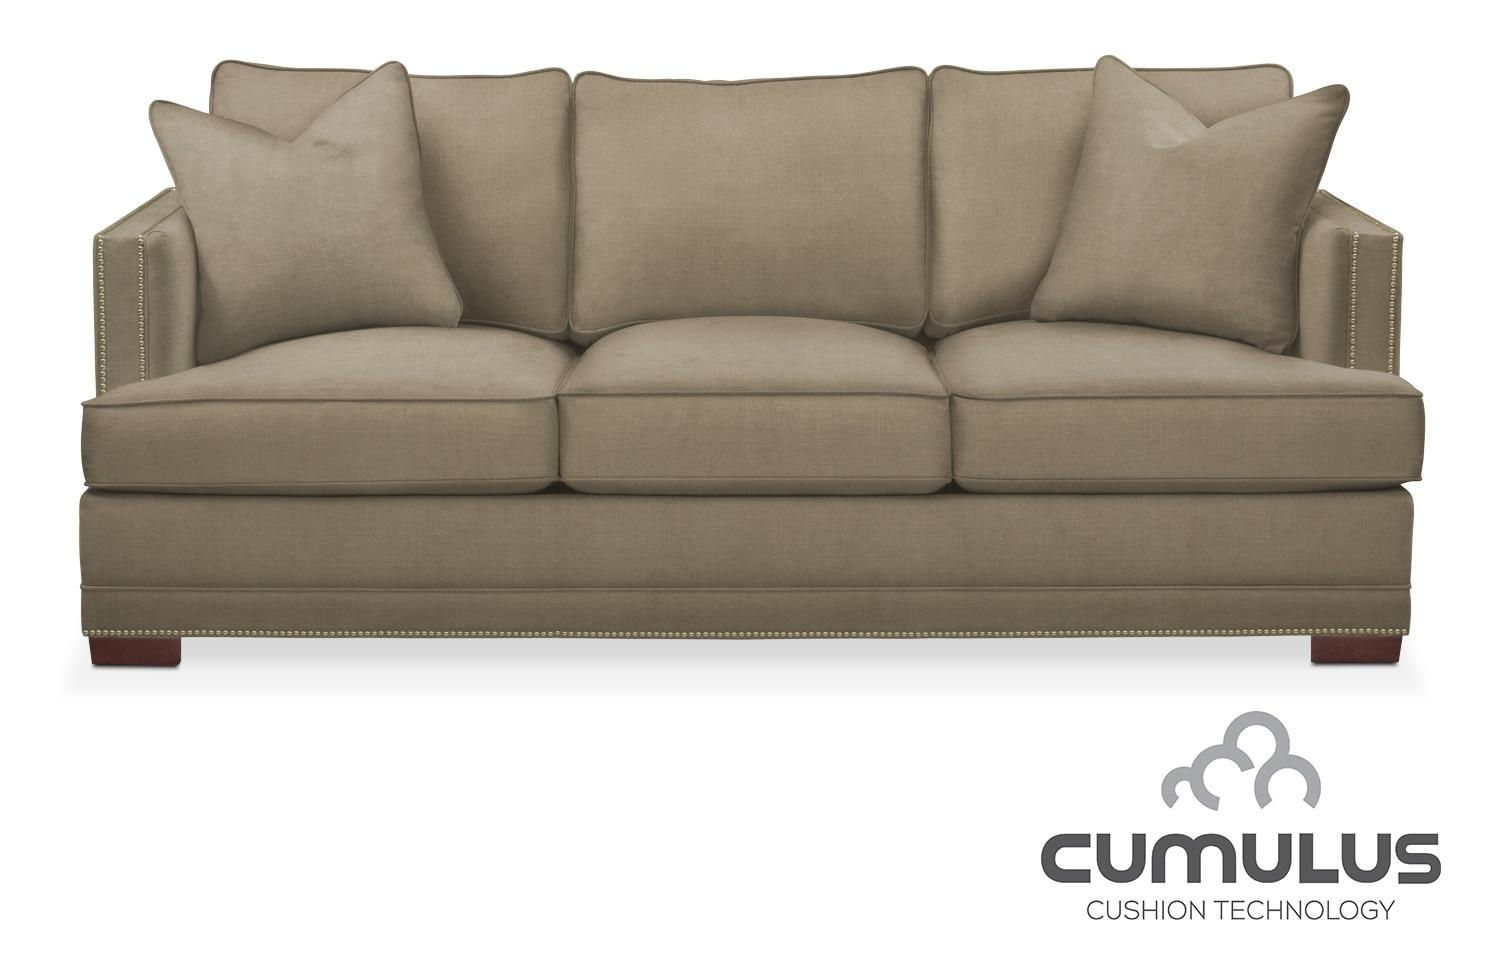 Sofas & Couches | Living Room Seating | Value City Furniture For Value City Sofas (Image 14 of 20)